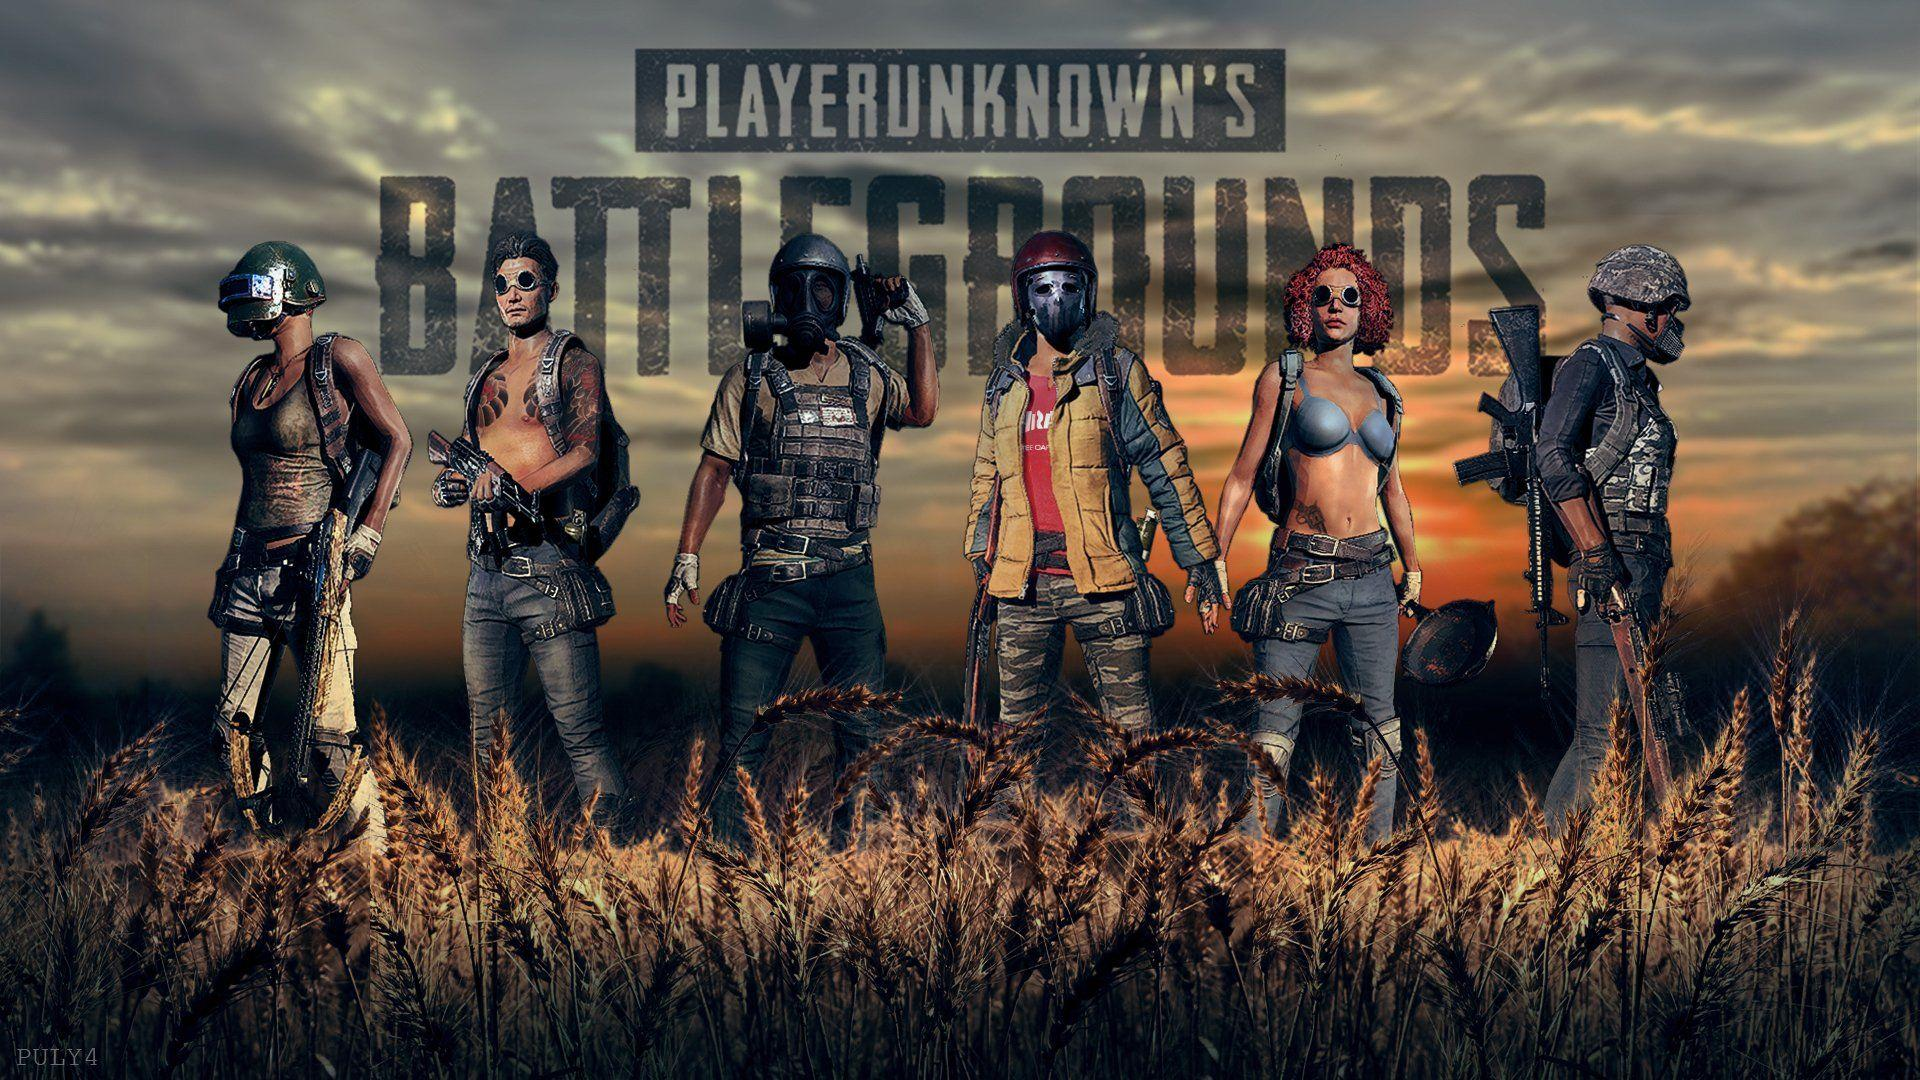 Pubg Game Girl Fanart Hd Games 4k Wallpapers Images: PUBG 4K Wallpapers